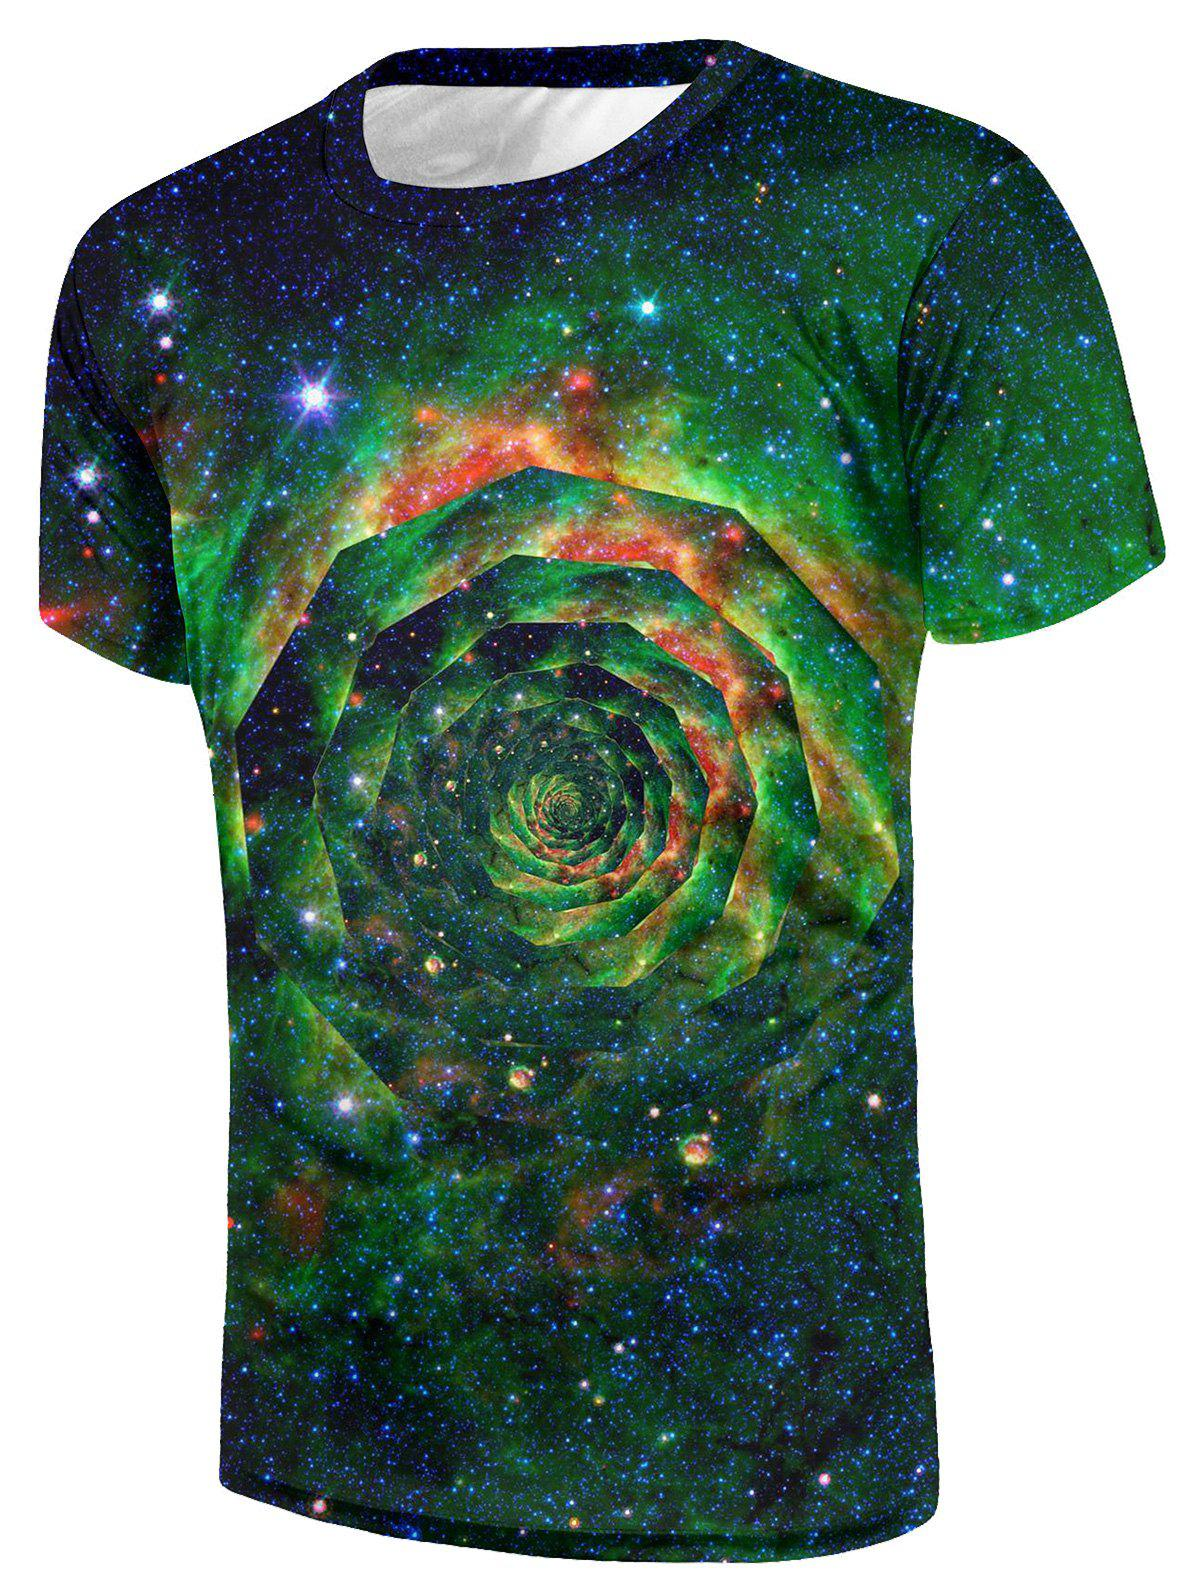 Casual Galaxy Floral Swirl Galaxy  Print T-shirt - multicolor 2XL